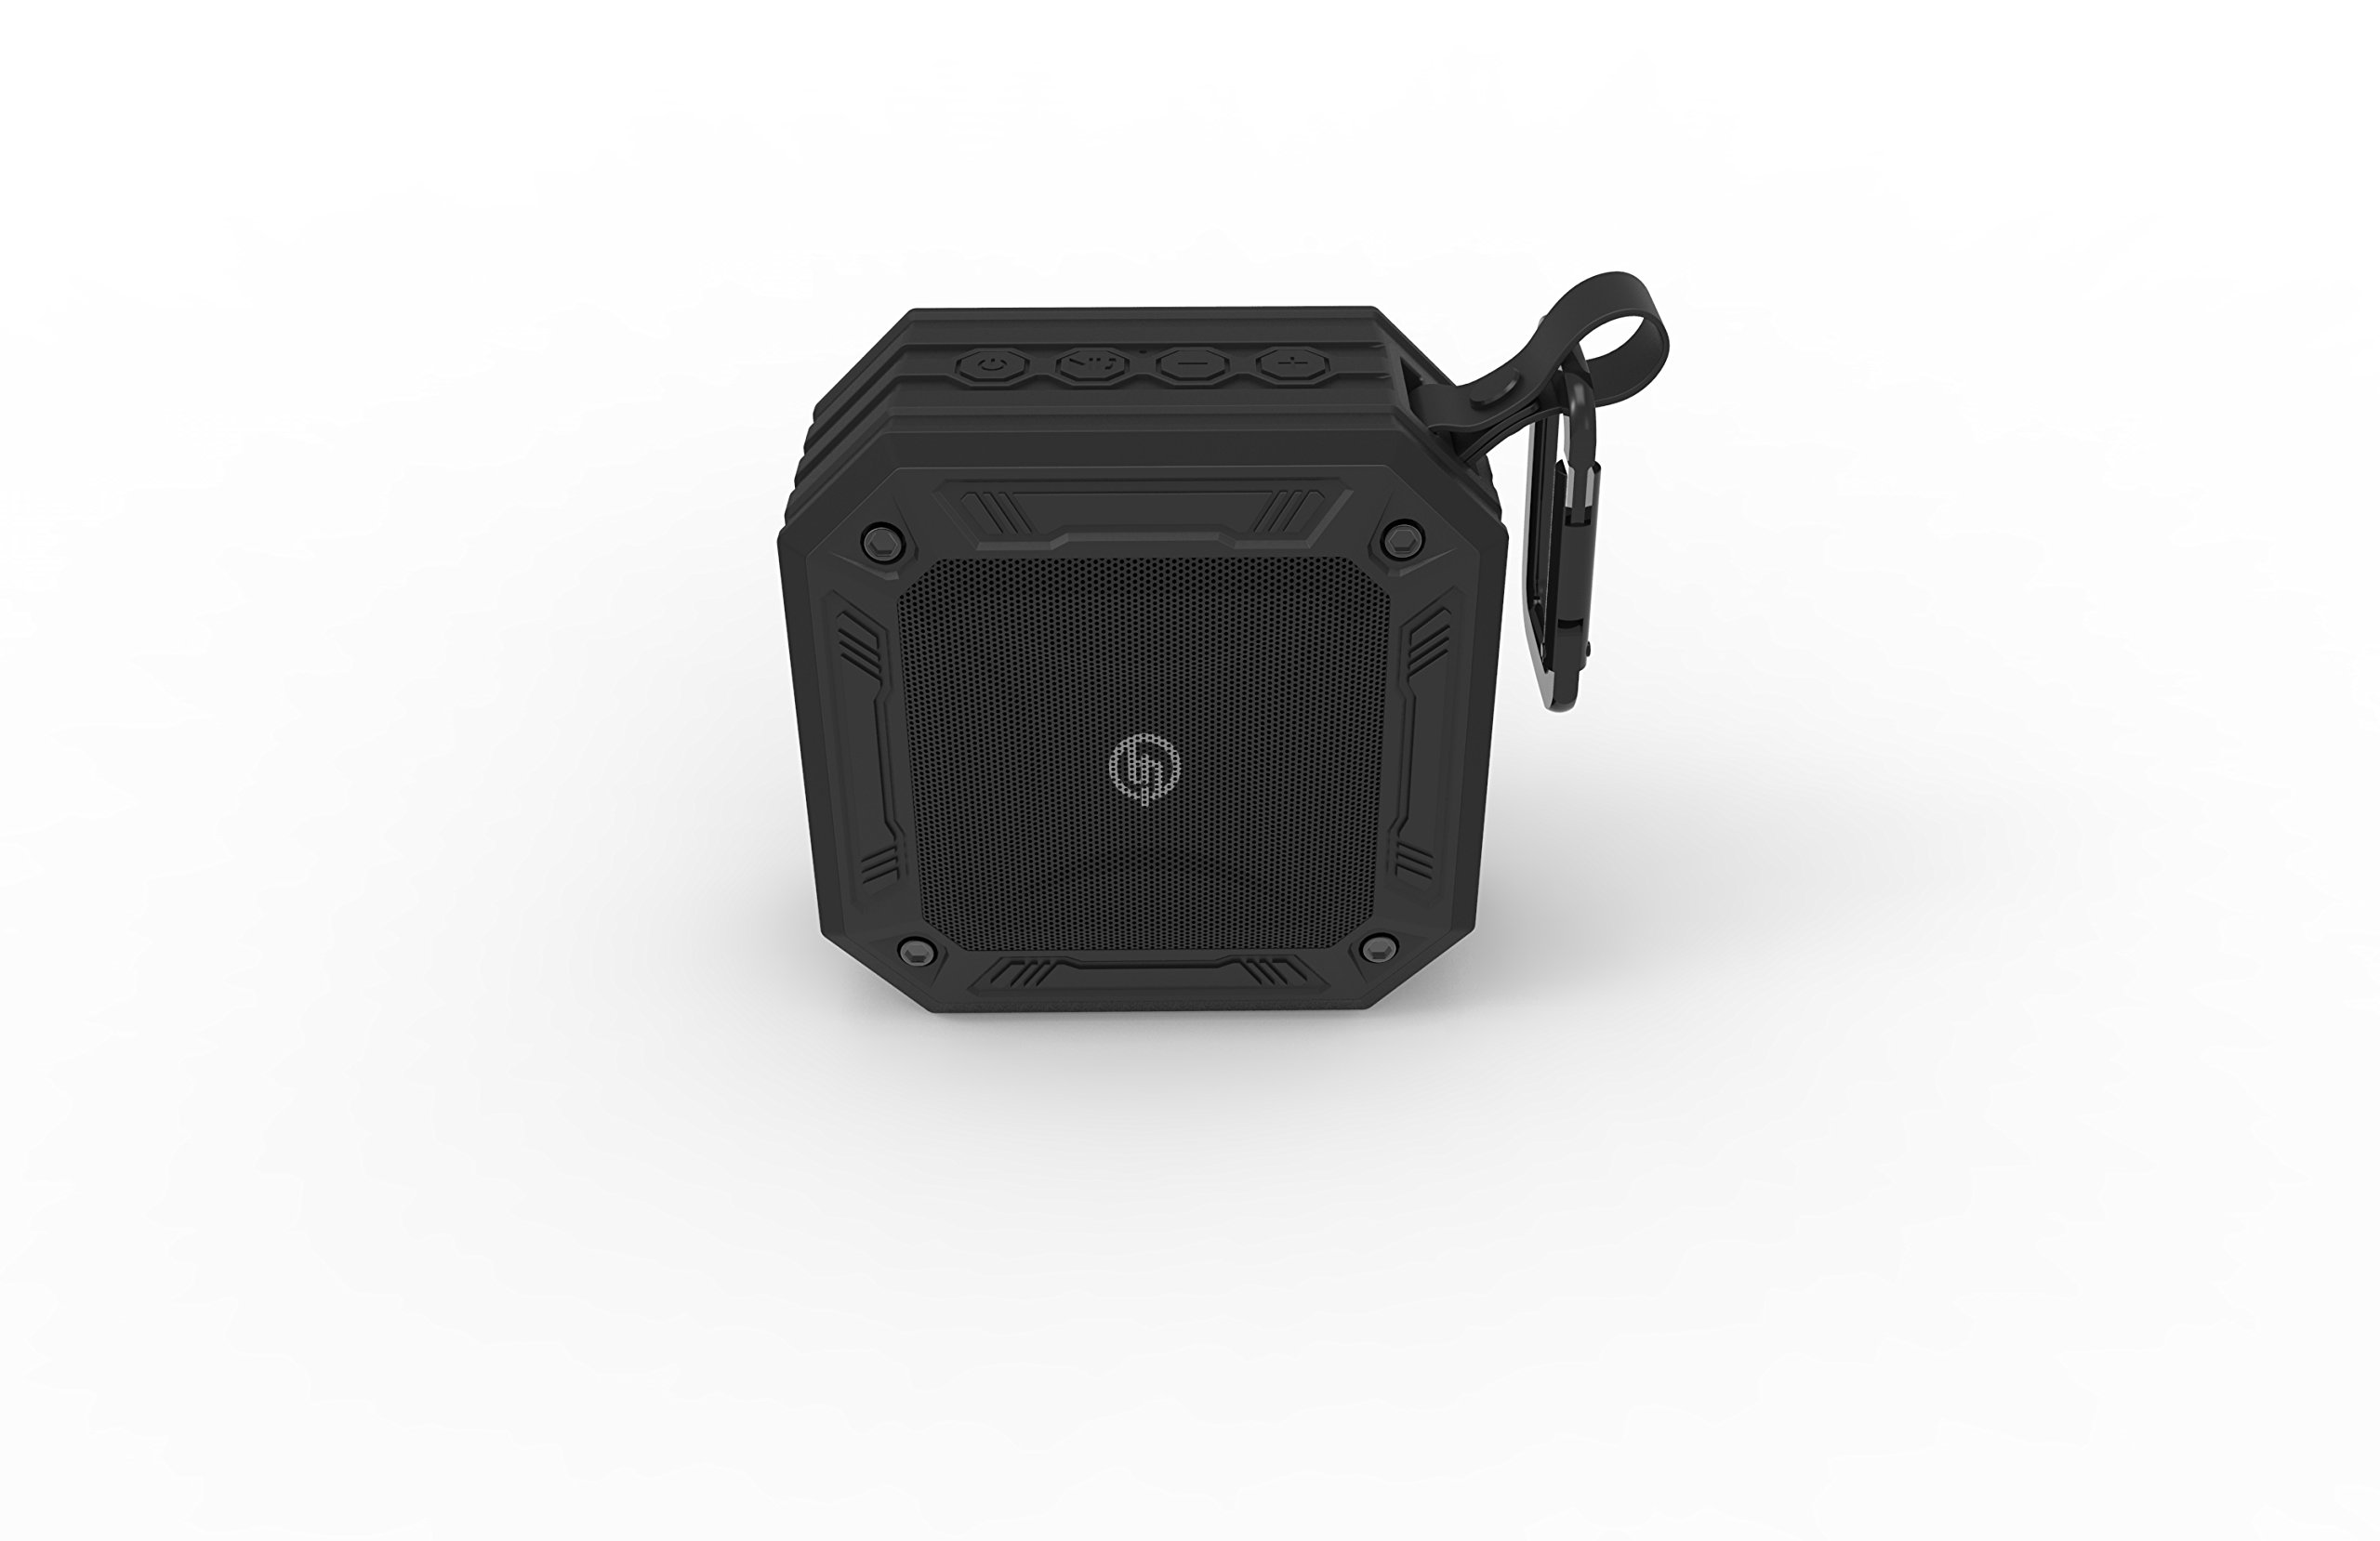 TECHQ HyrdoSound Sport - Waterproof (IP67) Outdoor Bluetooth Speaker 5W - 16 hours of play time by TECHQ (Image #2)